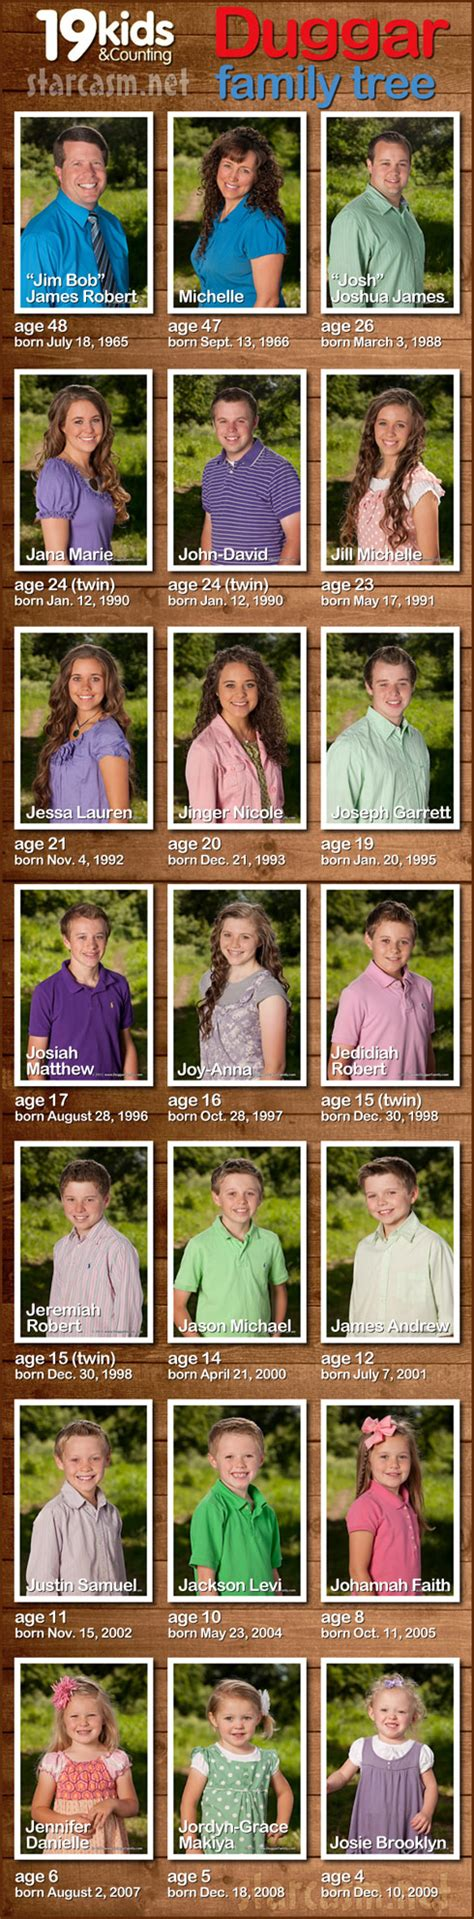 19 And Counting Also Search For The Duggar Family Ages 2015